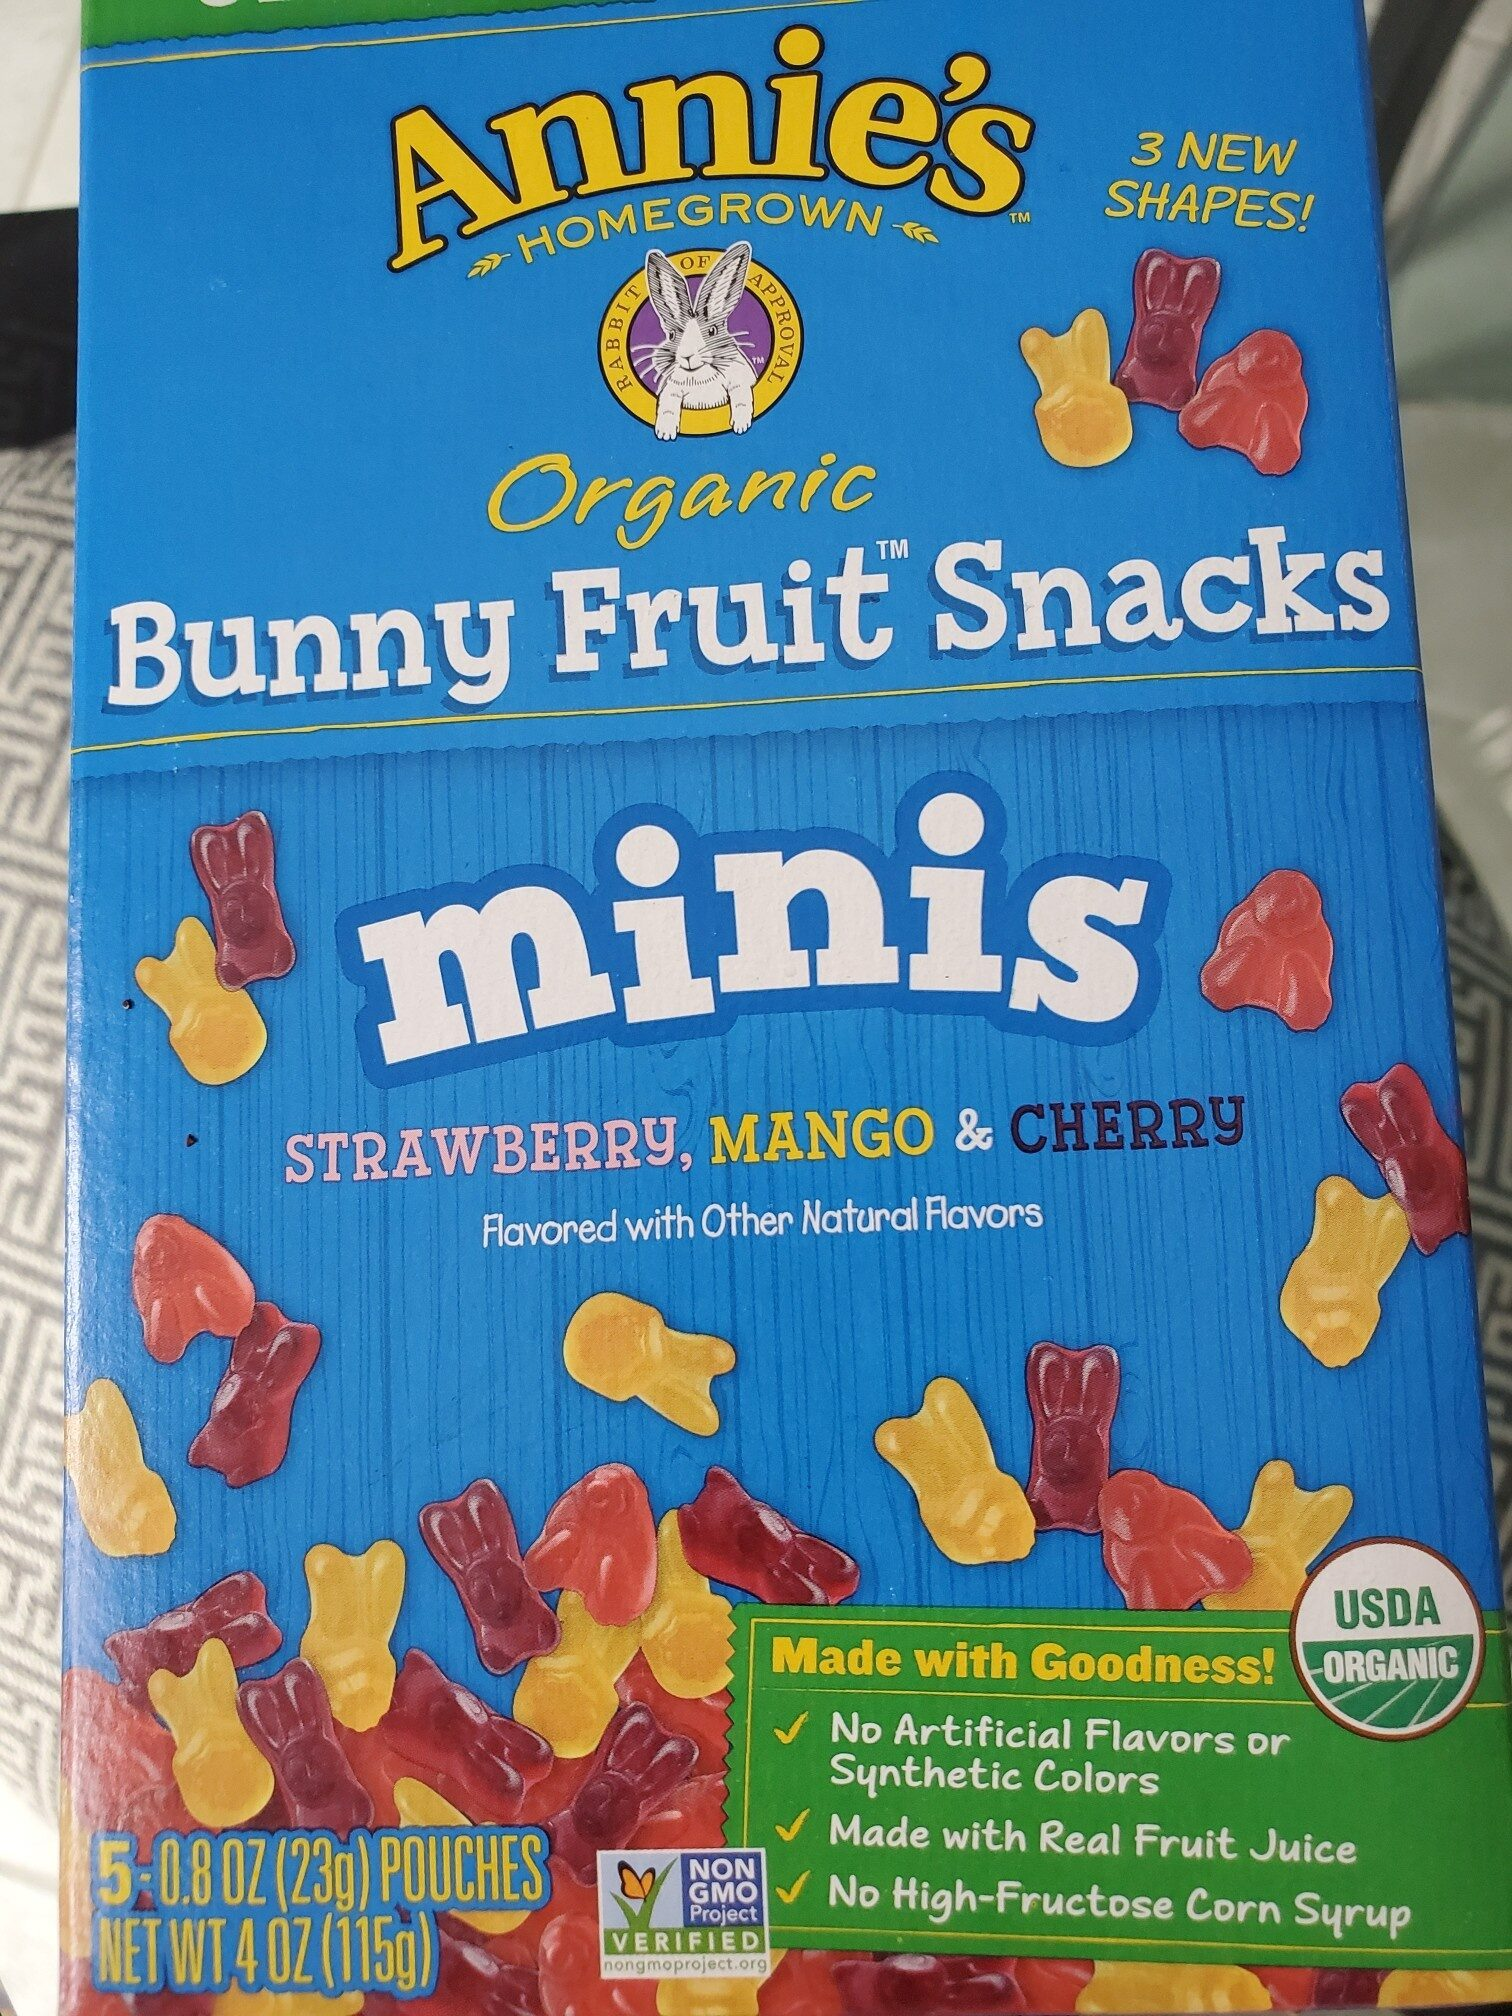 Annies Organic Bunny Fruit Snacks - Product